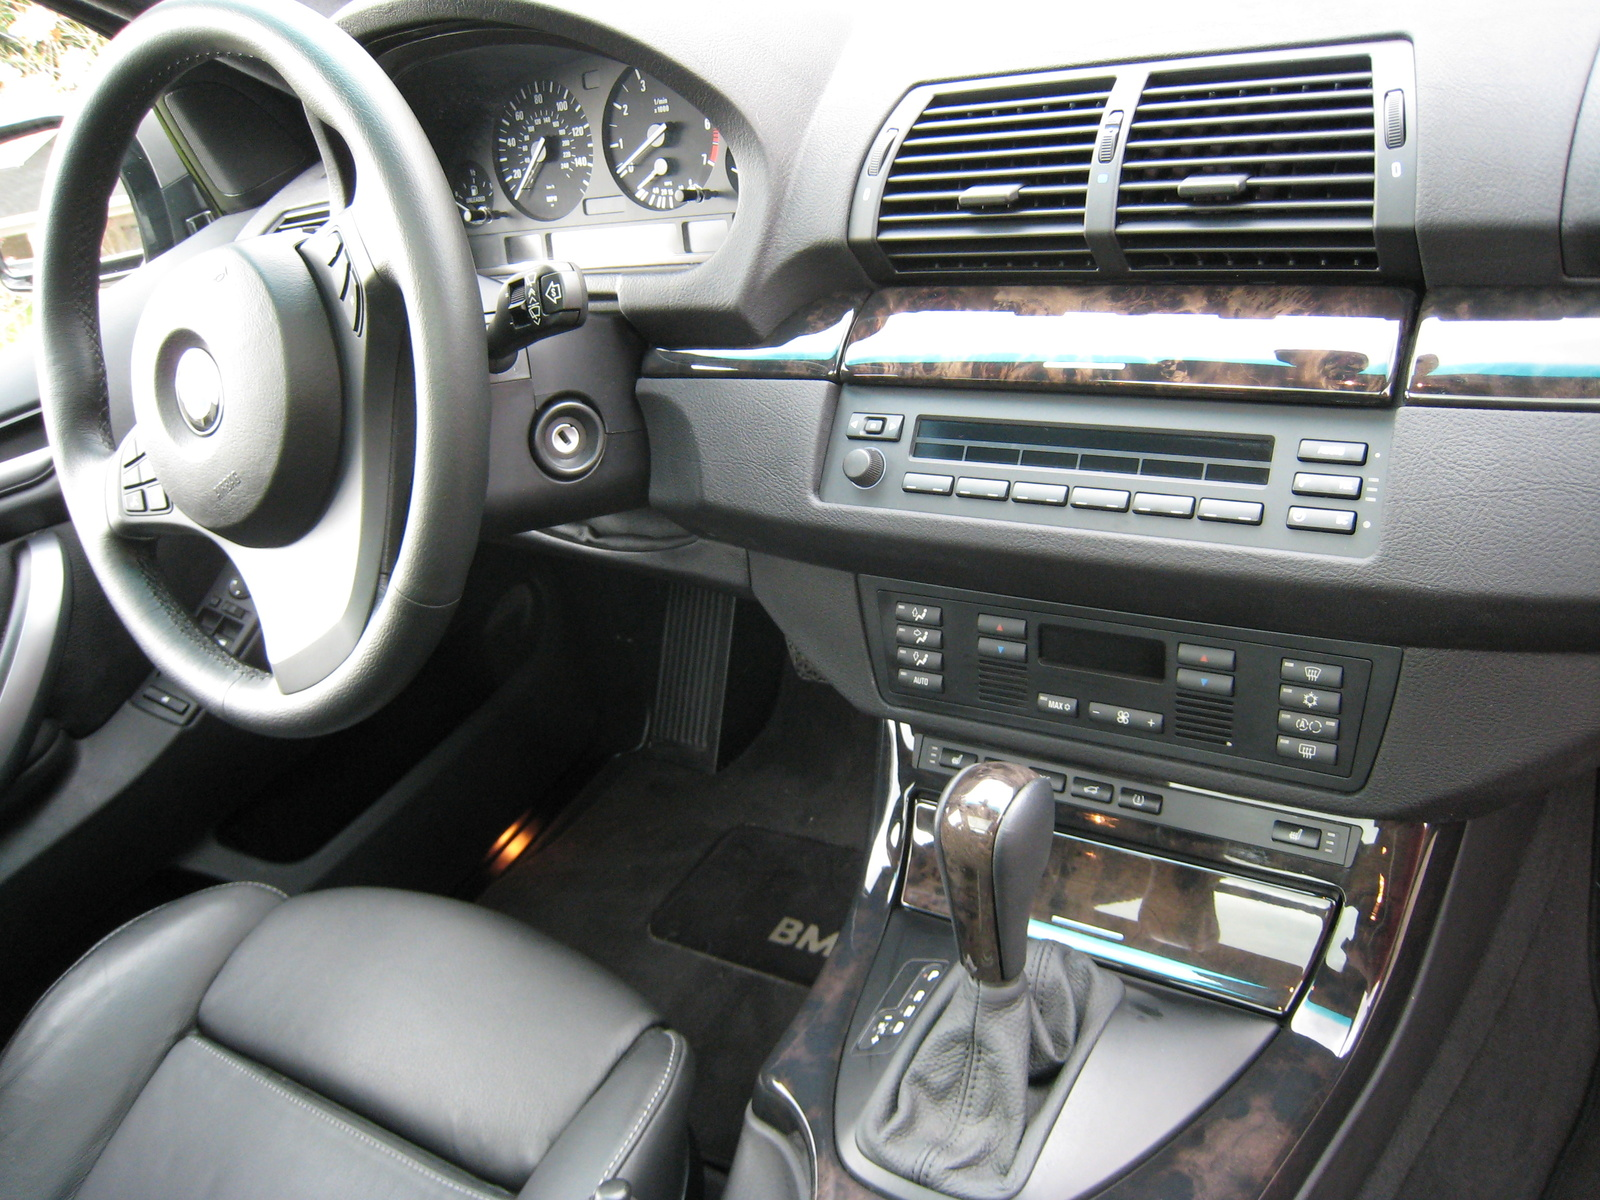 2004 BMW X5 - Interior Pictures - CarGurus